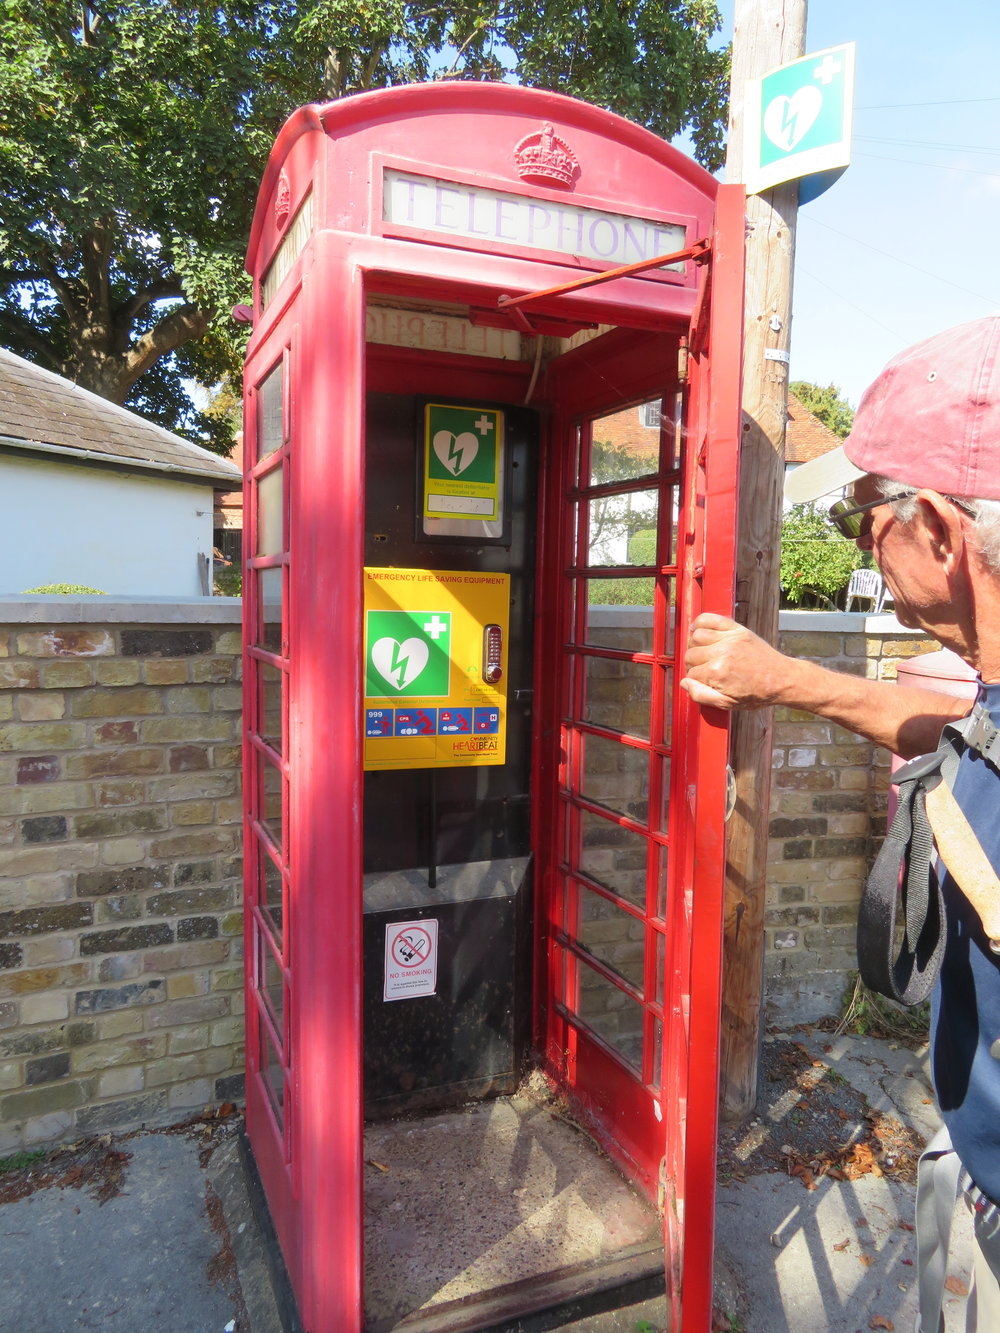 We found another red English phone booth today … it had a defibrillator inside along with instructions for use! Yikes!